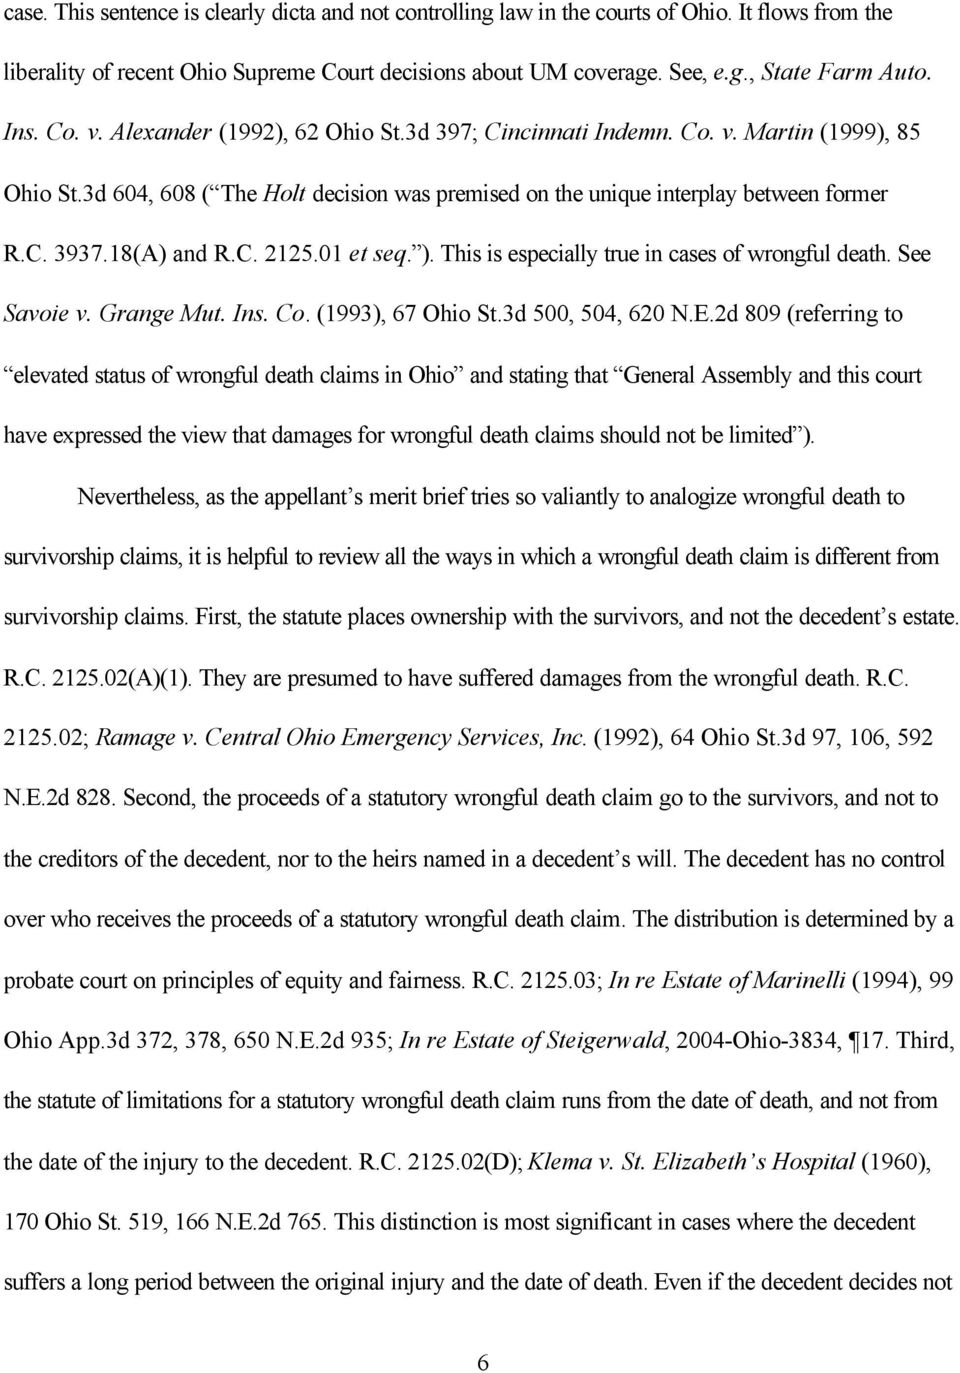 18(A) and R.C. 2125.01 et seq. ). This is especially true in cases of wrongful death. See Savoie v. Grange Mut. Ins. Co. (1993), 67 Ohio St.3d 500, 504, 620 N.E.